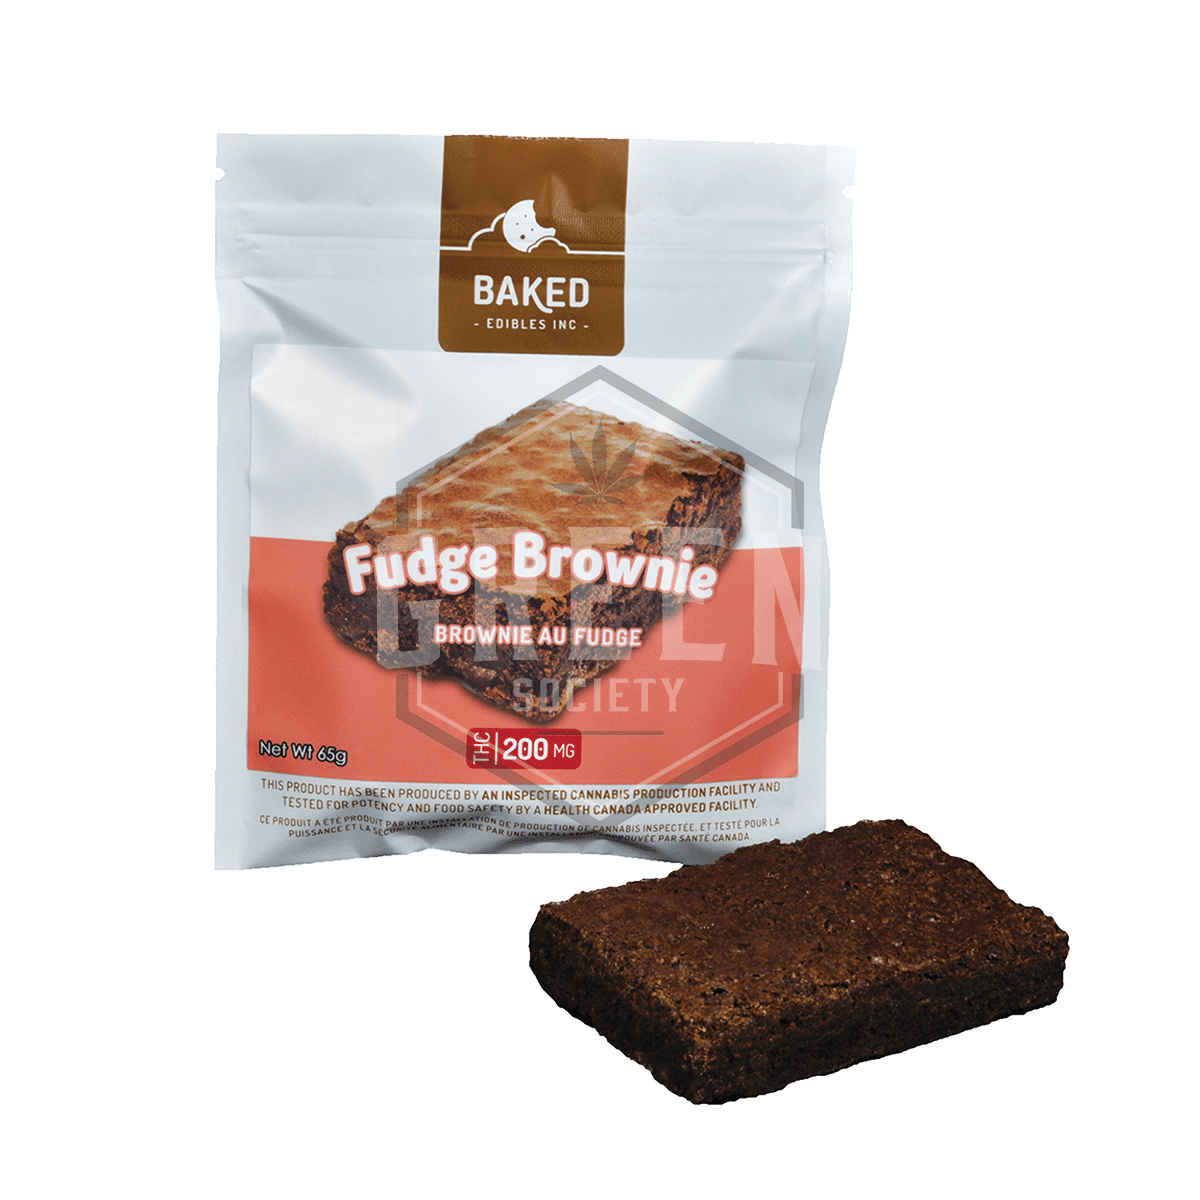 Fudge Brownie (200mg) by Baked Edibles by Green Society - Image © 2018 Green Society. All Rights Reserved.